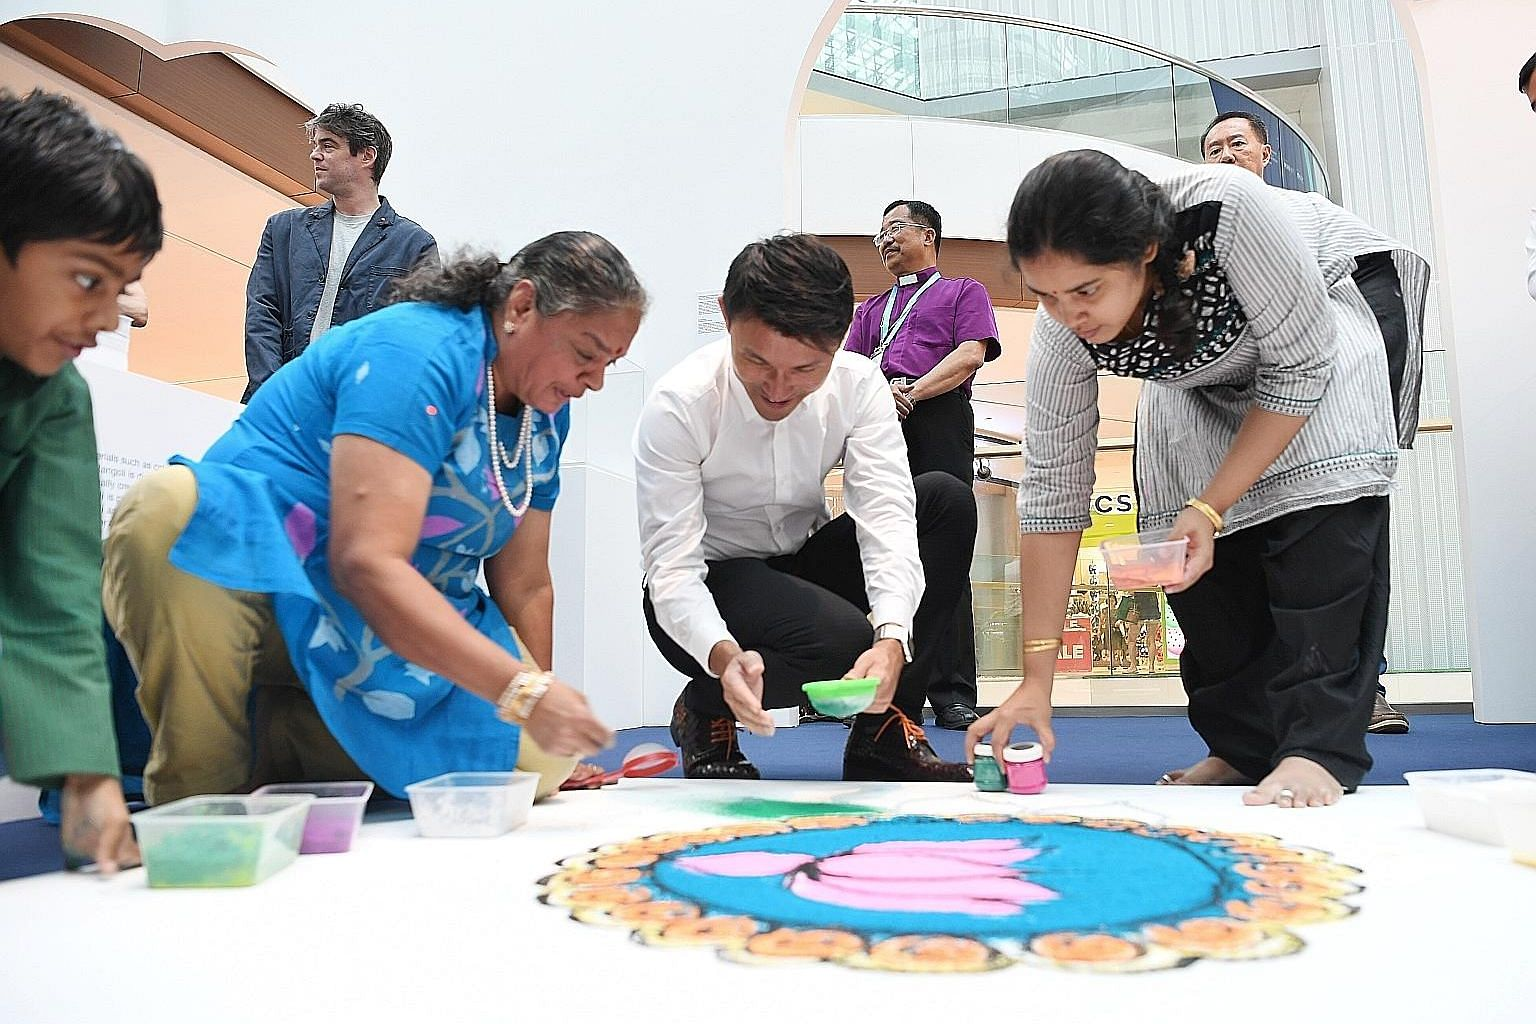 Senior Parliamentary Secretary for Culture, Community and Youth Baey Yam Keng joining Madam Vijaya Mohan, her grandson Pravan Bakshi and niece Amirta Ravikumaran in giving the finishing touches to rangoli art at the launch of the Many Beliefs, One Fu